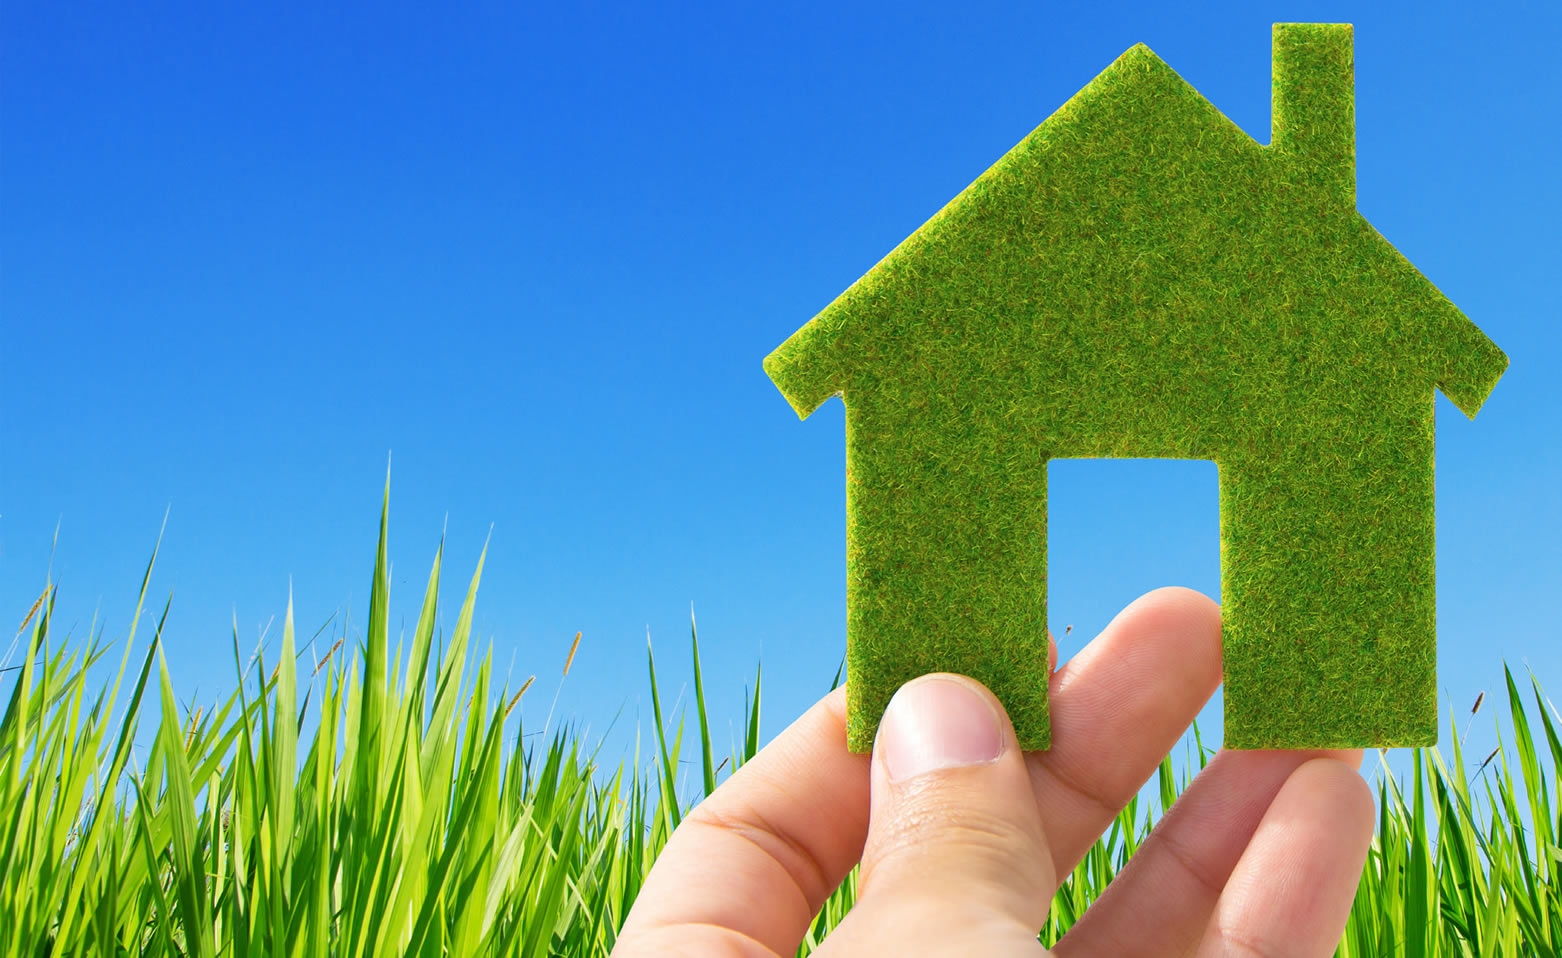 Living Green: Committing to a Healthy and Restful Home Environment